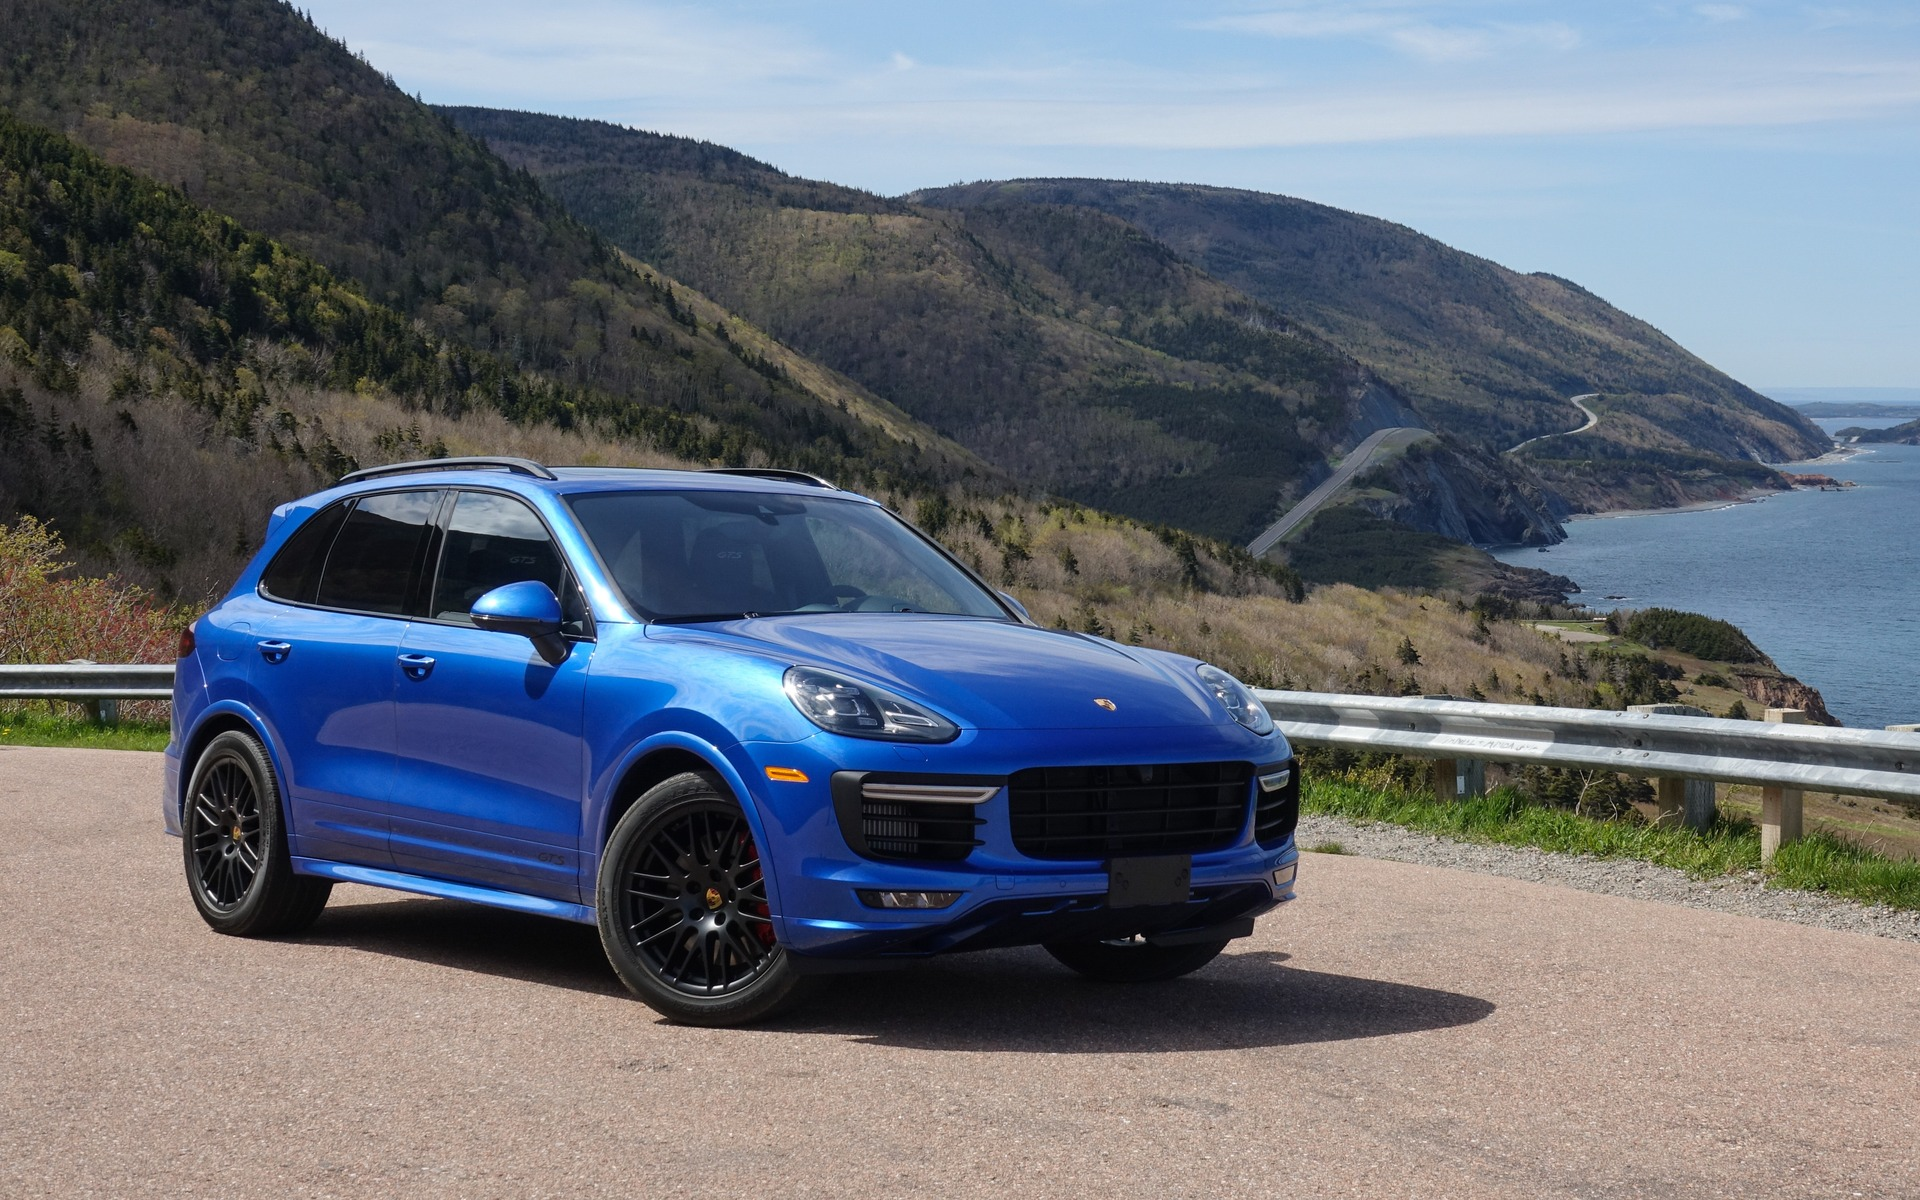 Porsche Cayenne Gts And Macan Turbo On The Cabot Trail